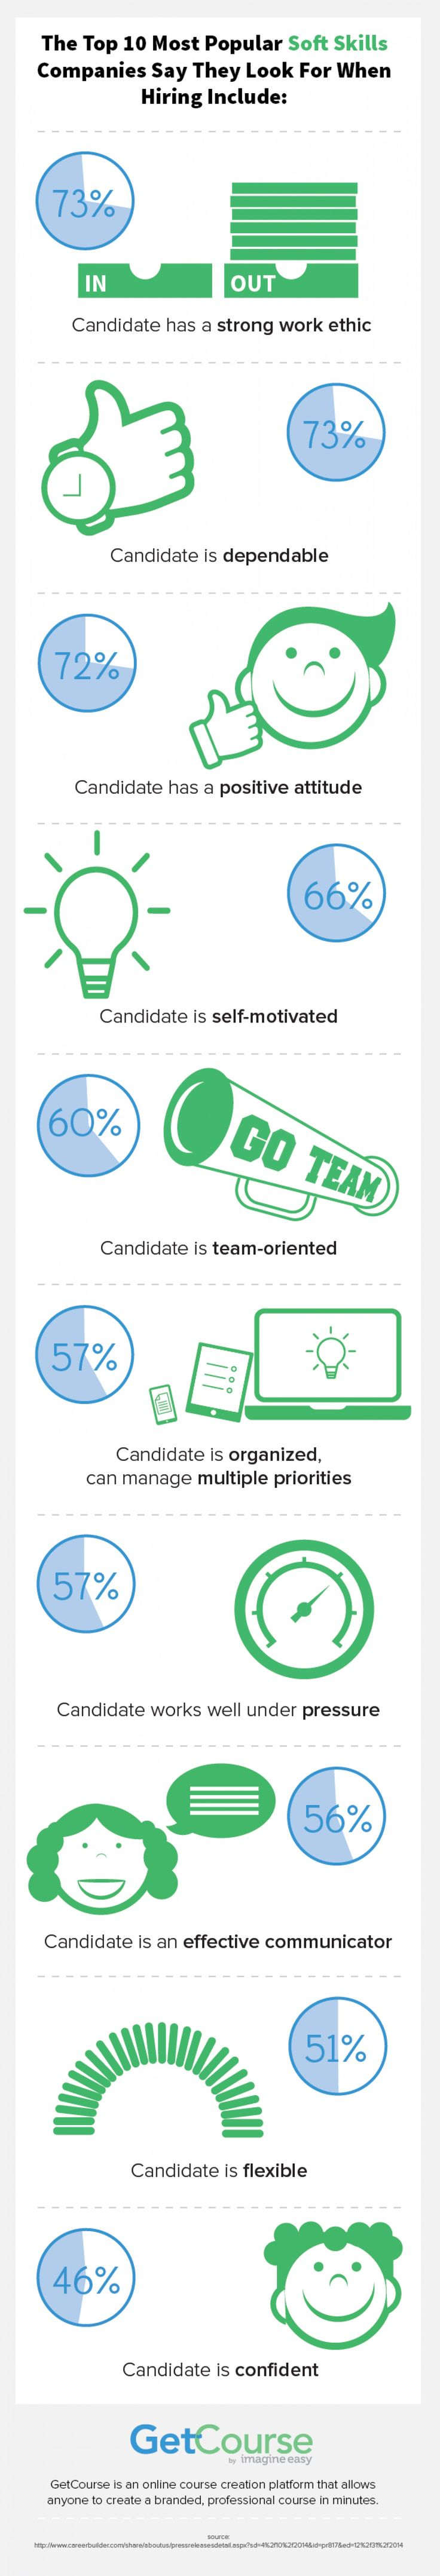 The Top 10 Most Popular Soft Skills Companies Say They Look For When Hiring Include